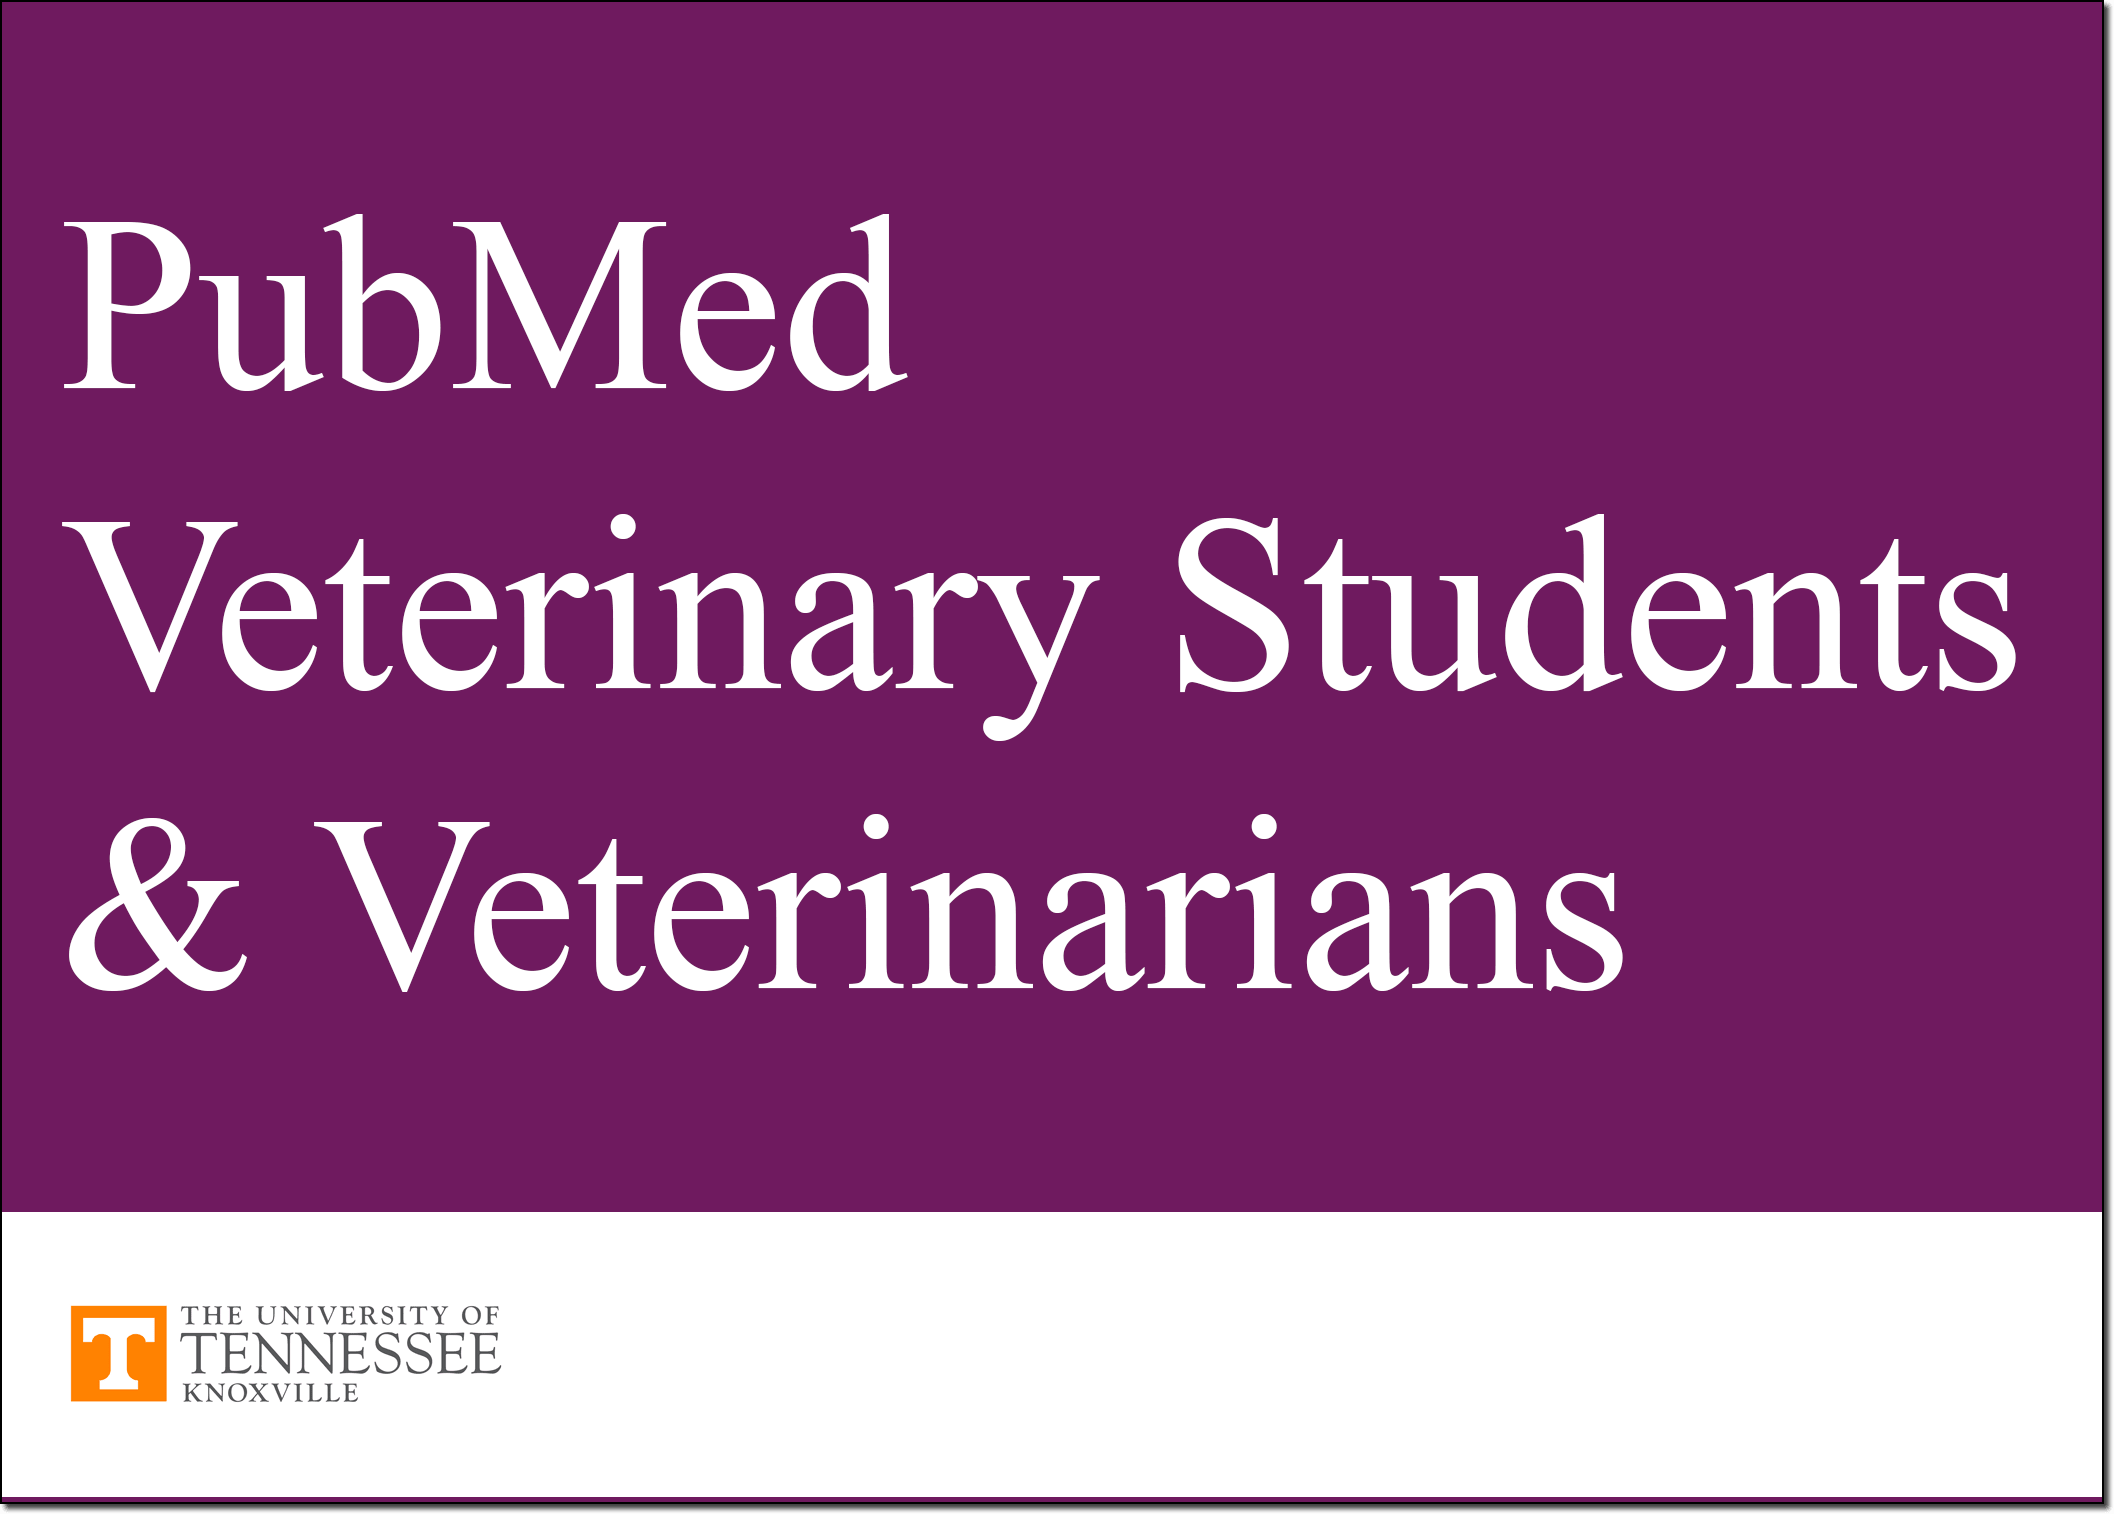 PubMed for Veterinary Students and Veterinarians tutorial.